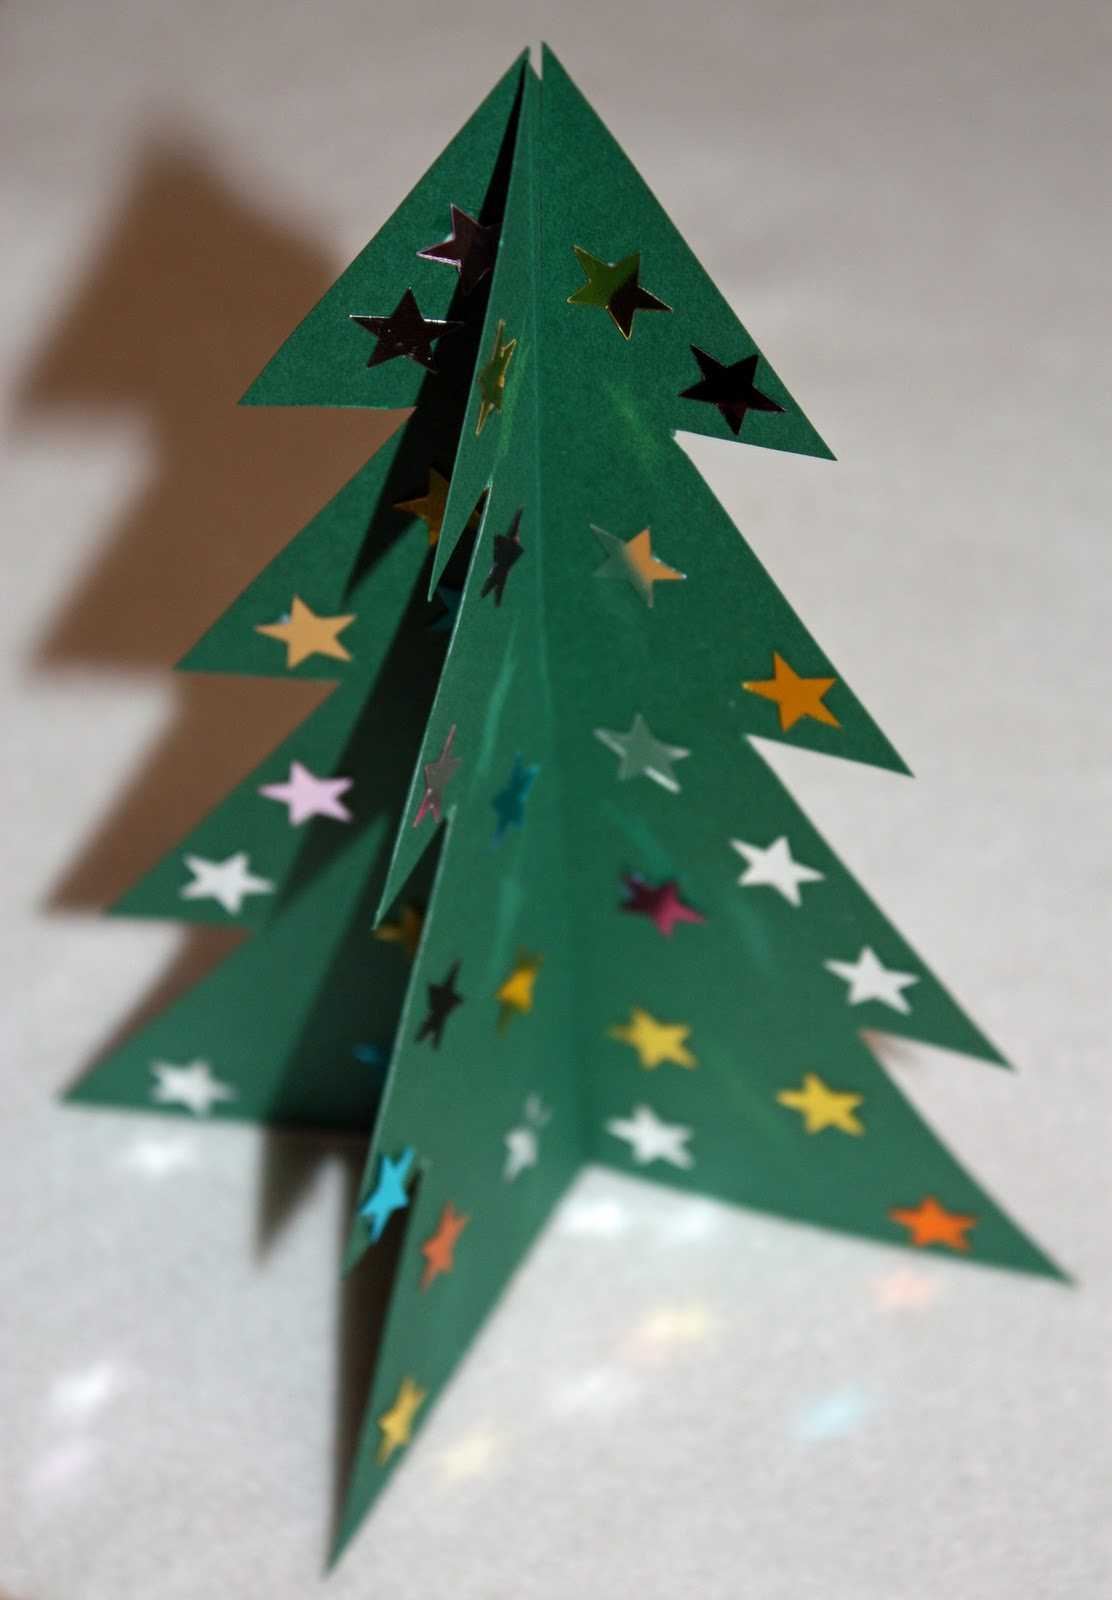 Craft And Activities For All Ages!: Make A 3D Card Christmas Intended For 3D Christmas Tree Card Template